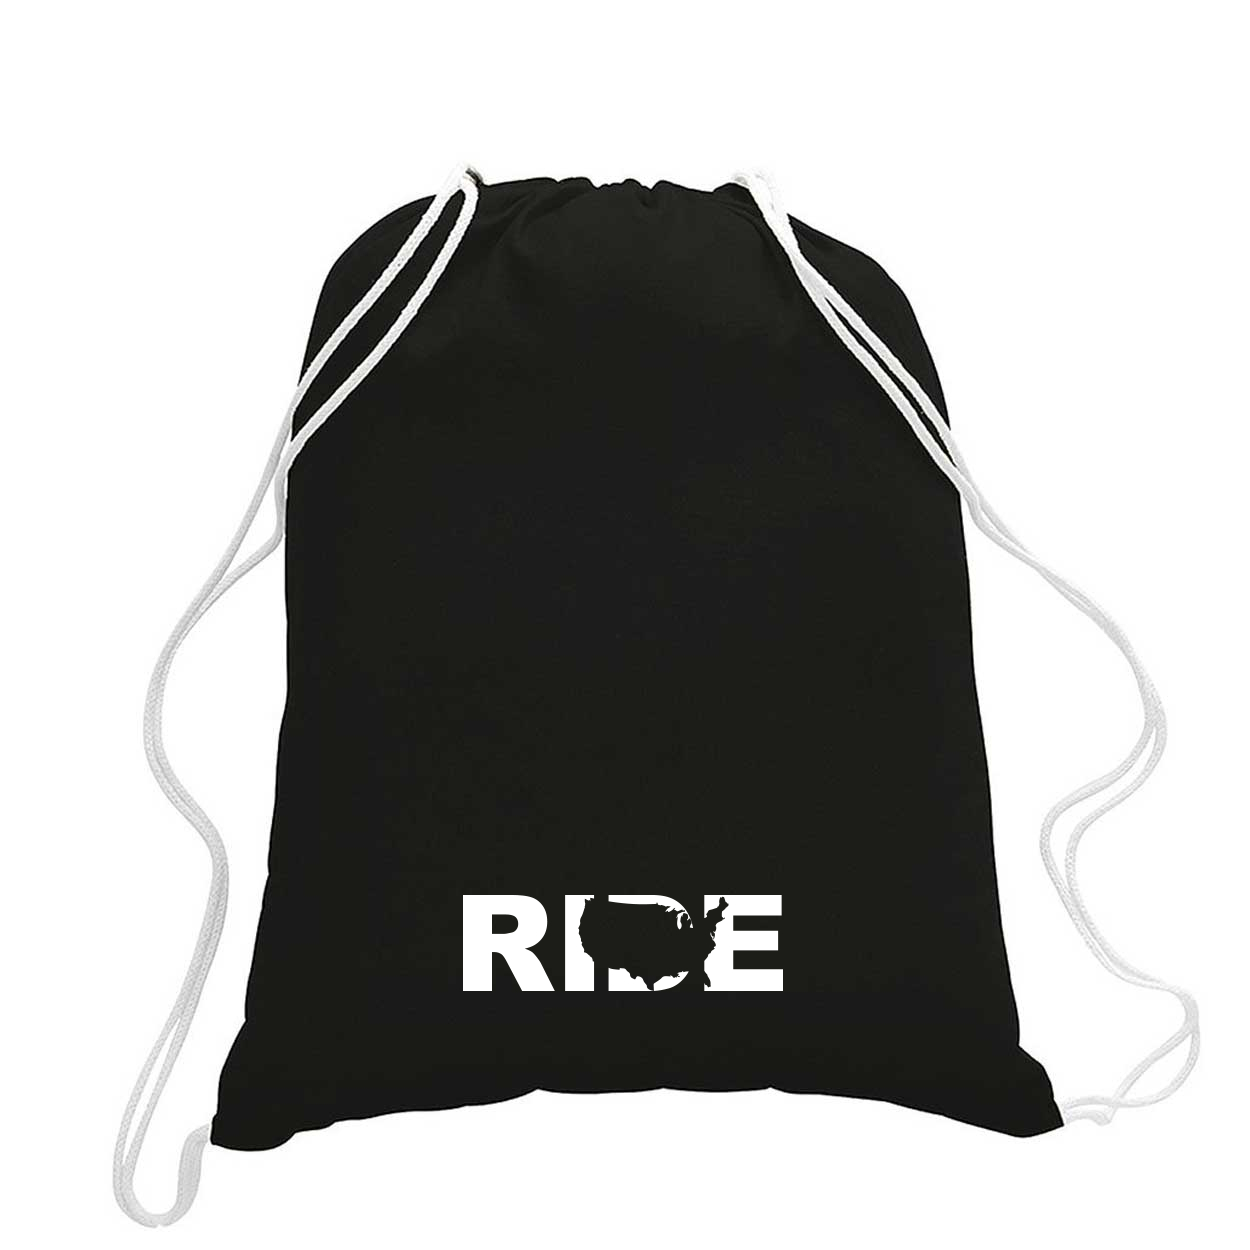 Ride United States Classic Drawstring Sport Pack Bag/Cinch Sack Black (White Logo)